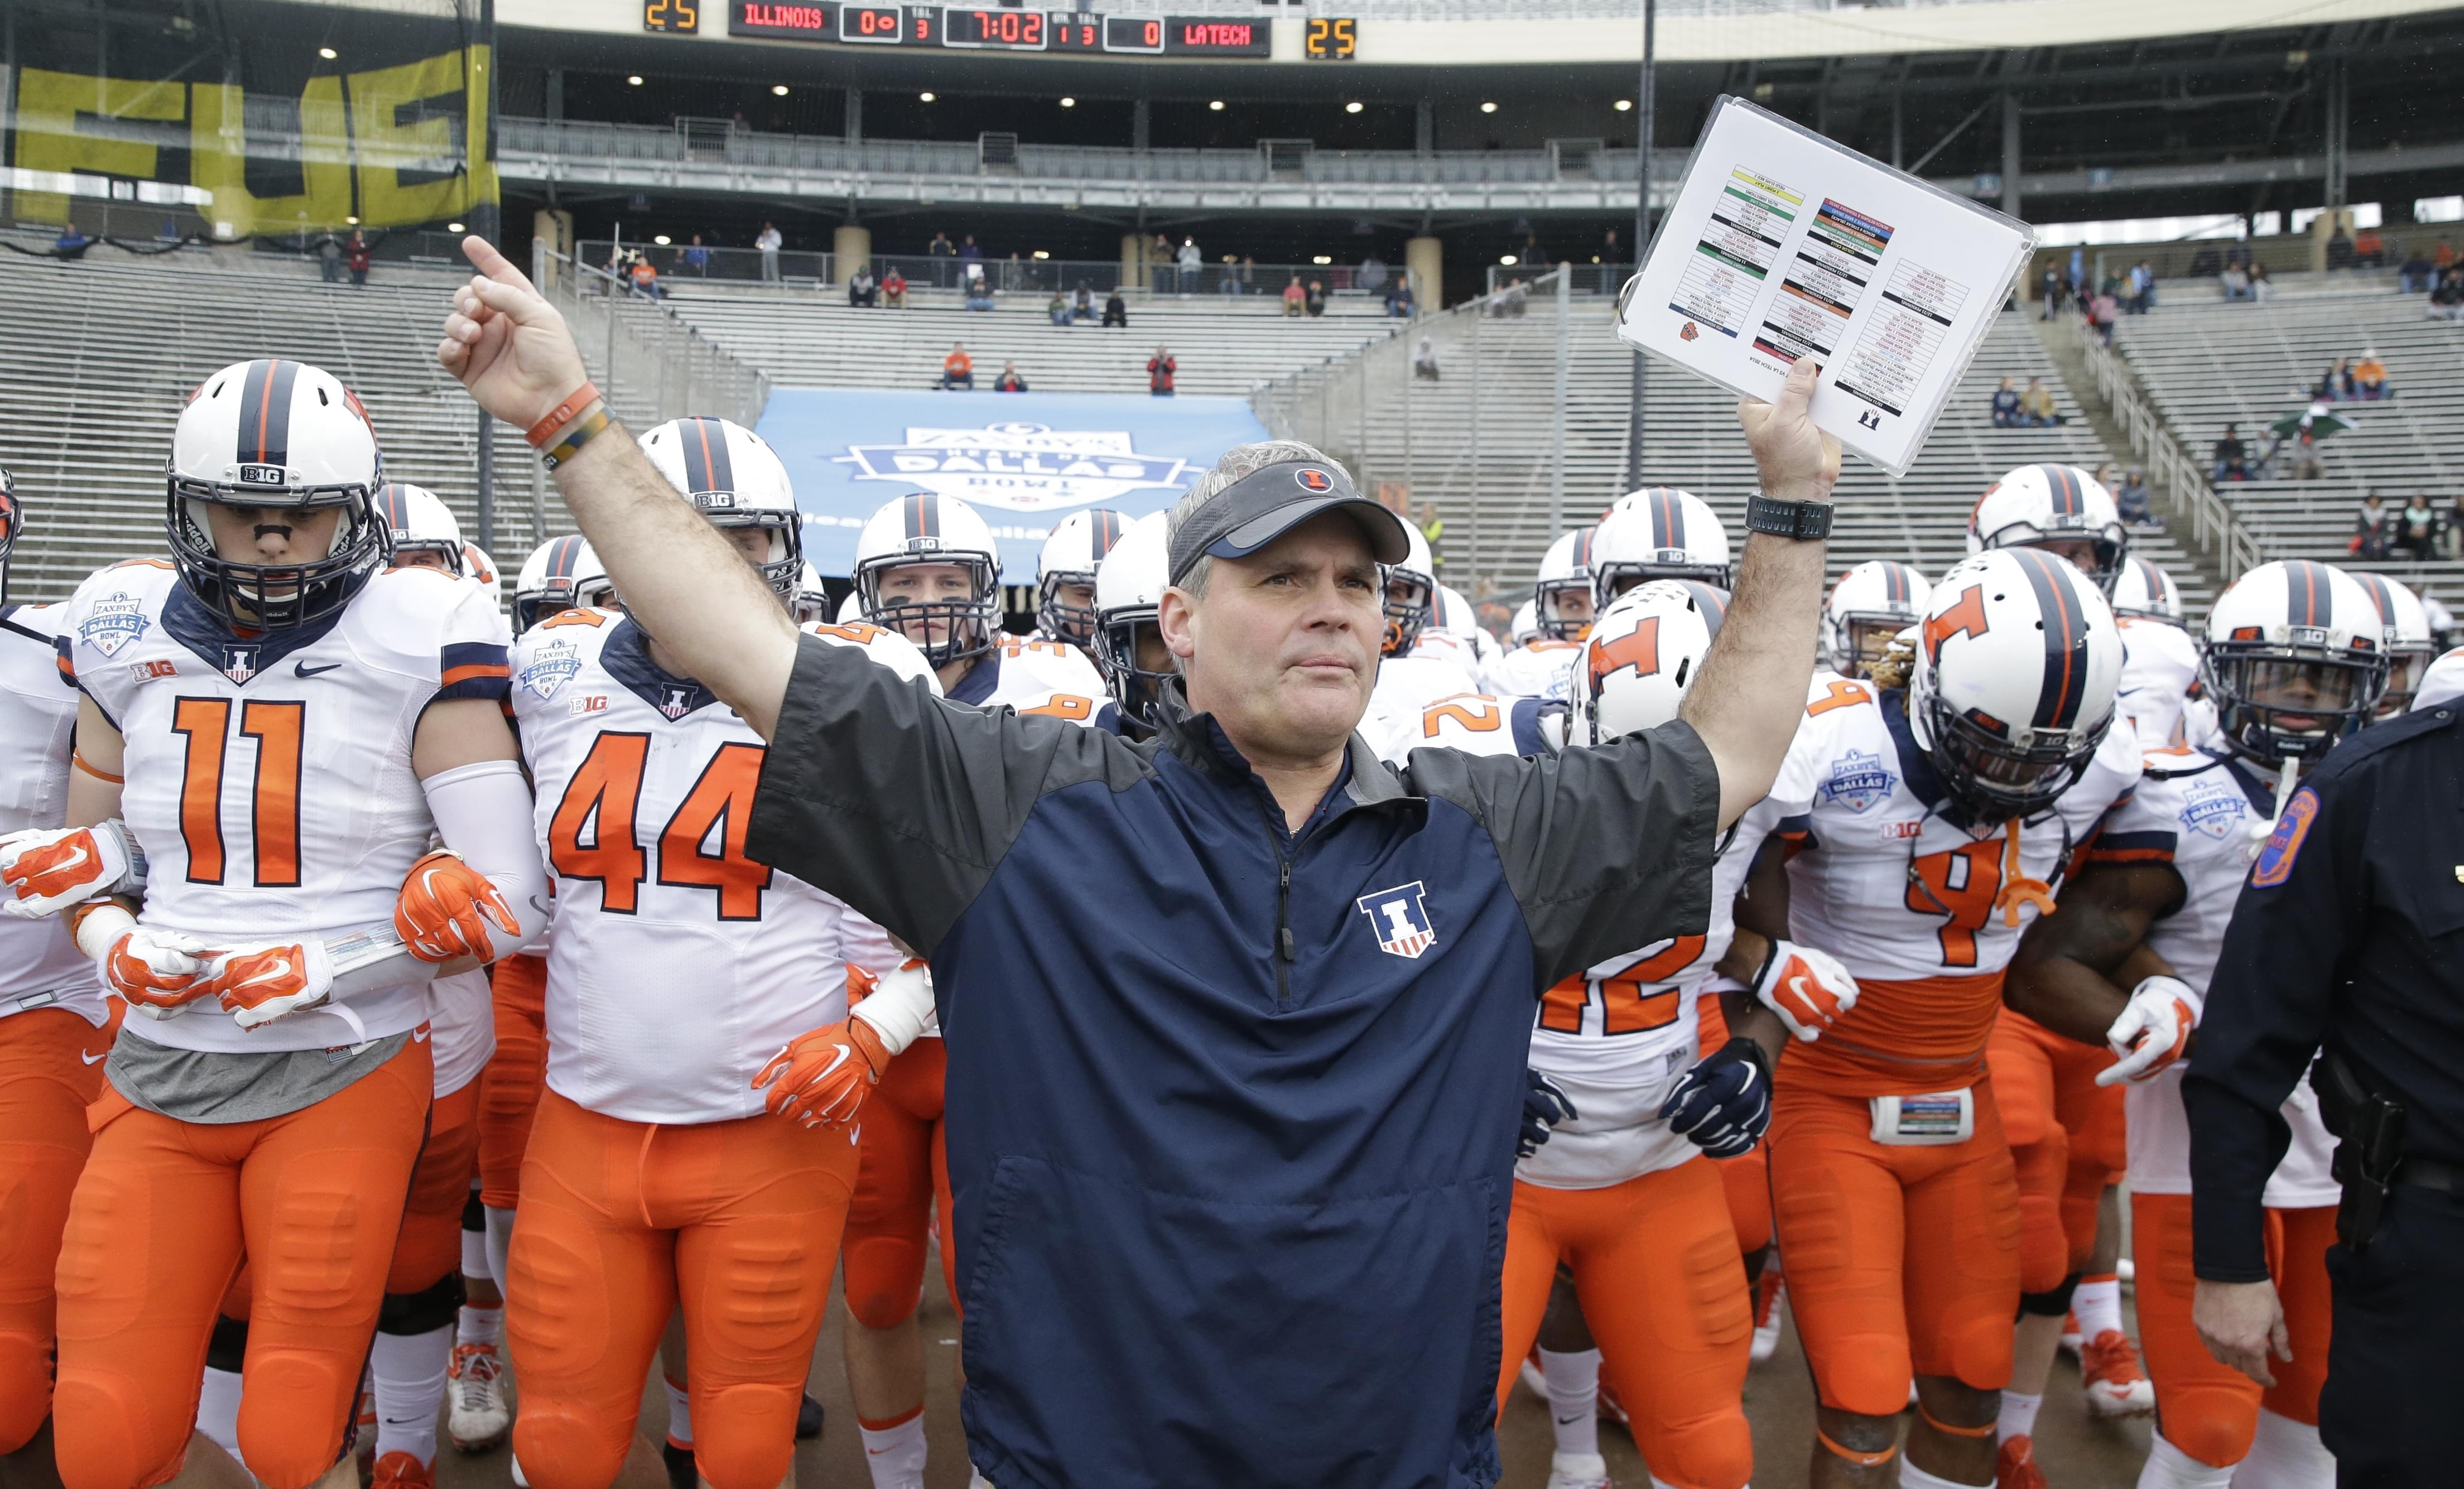 Illinois head coach Tim Beckman lines up with his players before the Heart of Dallas Bowl NCAA college football game against Louisiana Tech Friday, Dec. 26, 2014, in Dallas.